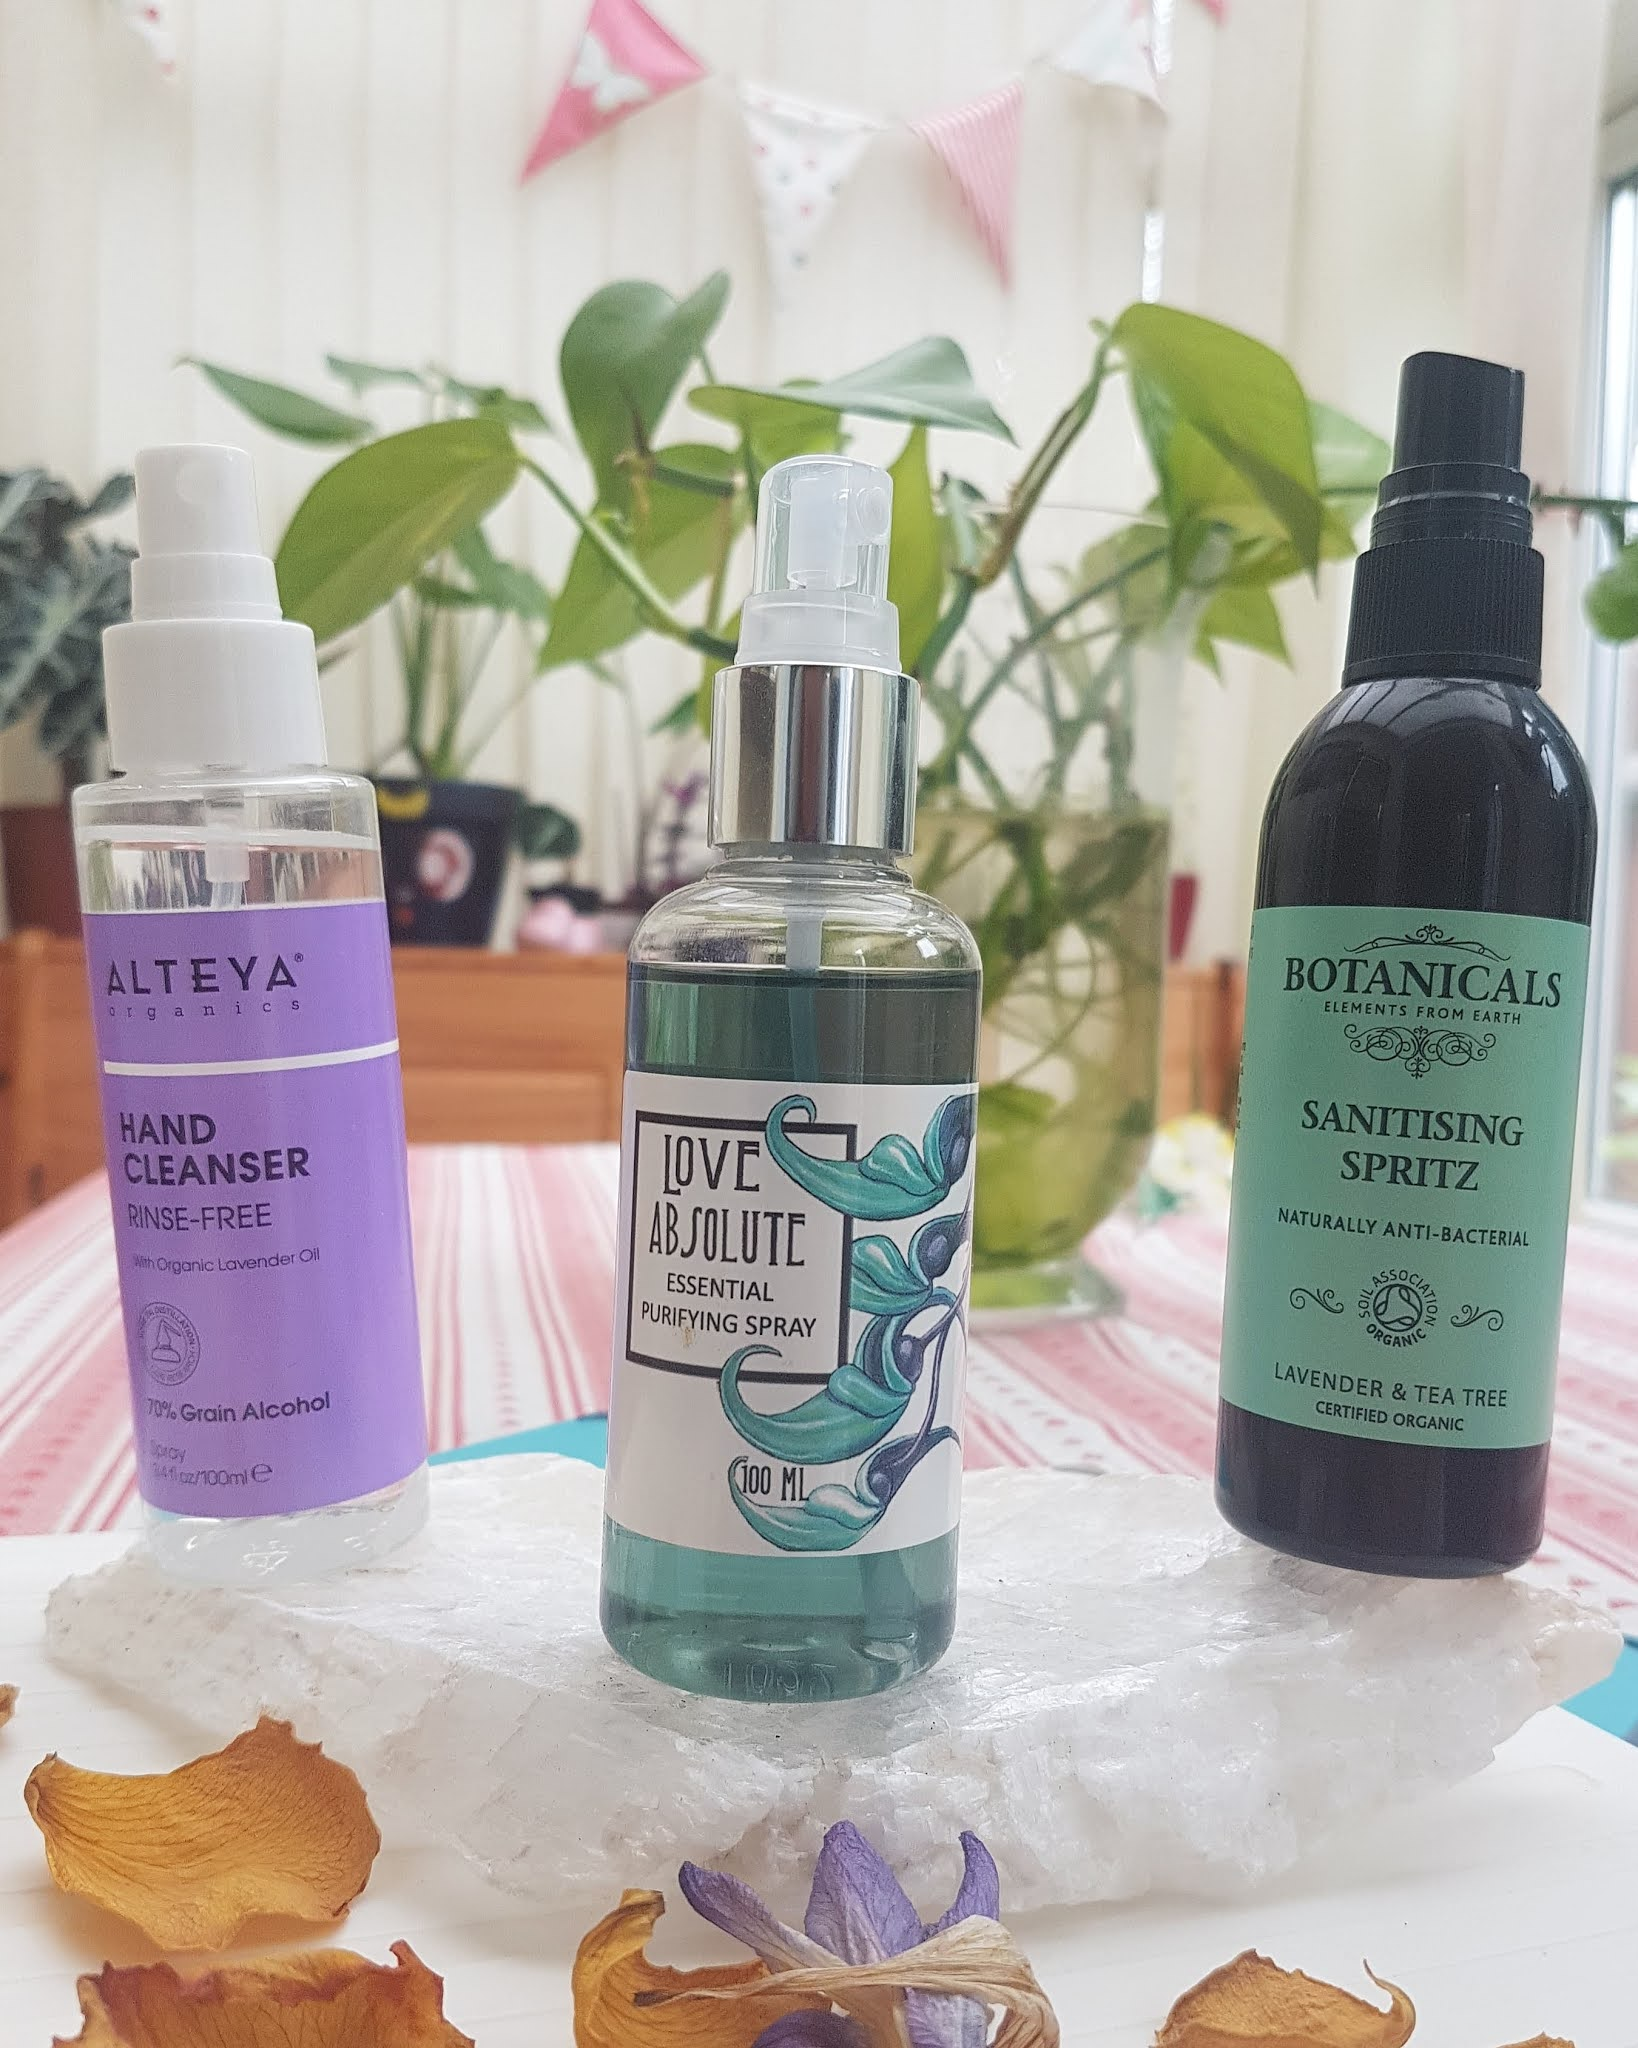 Safe Sanitizers - Natural Hand Sanitizer Guide -  Botanicals, Alteya, Love Absolute Review